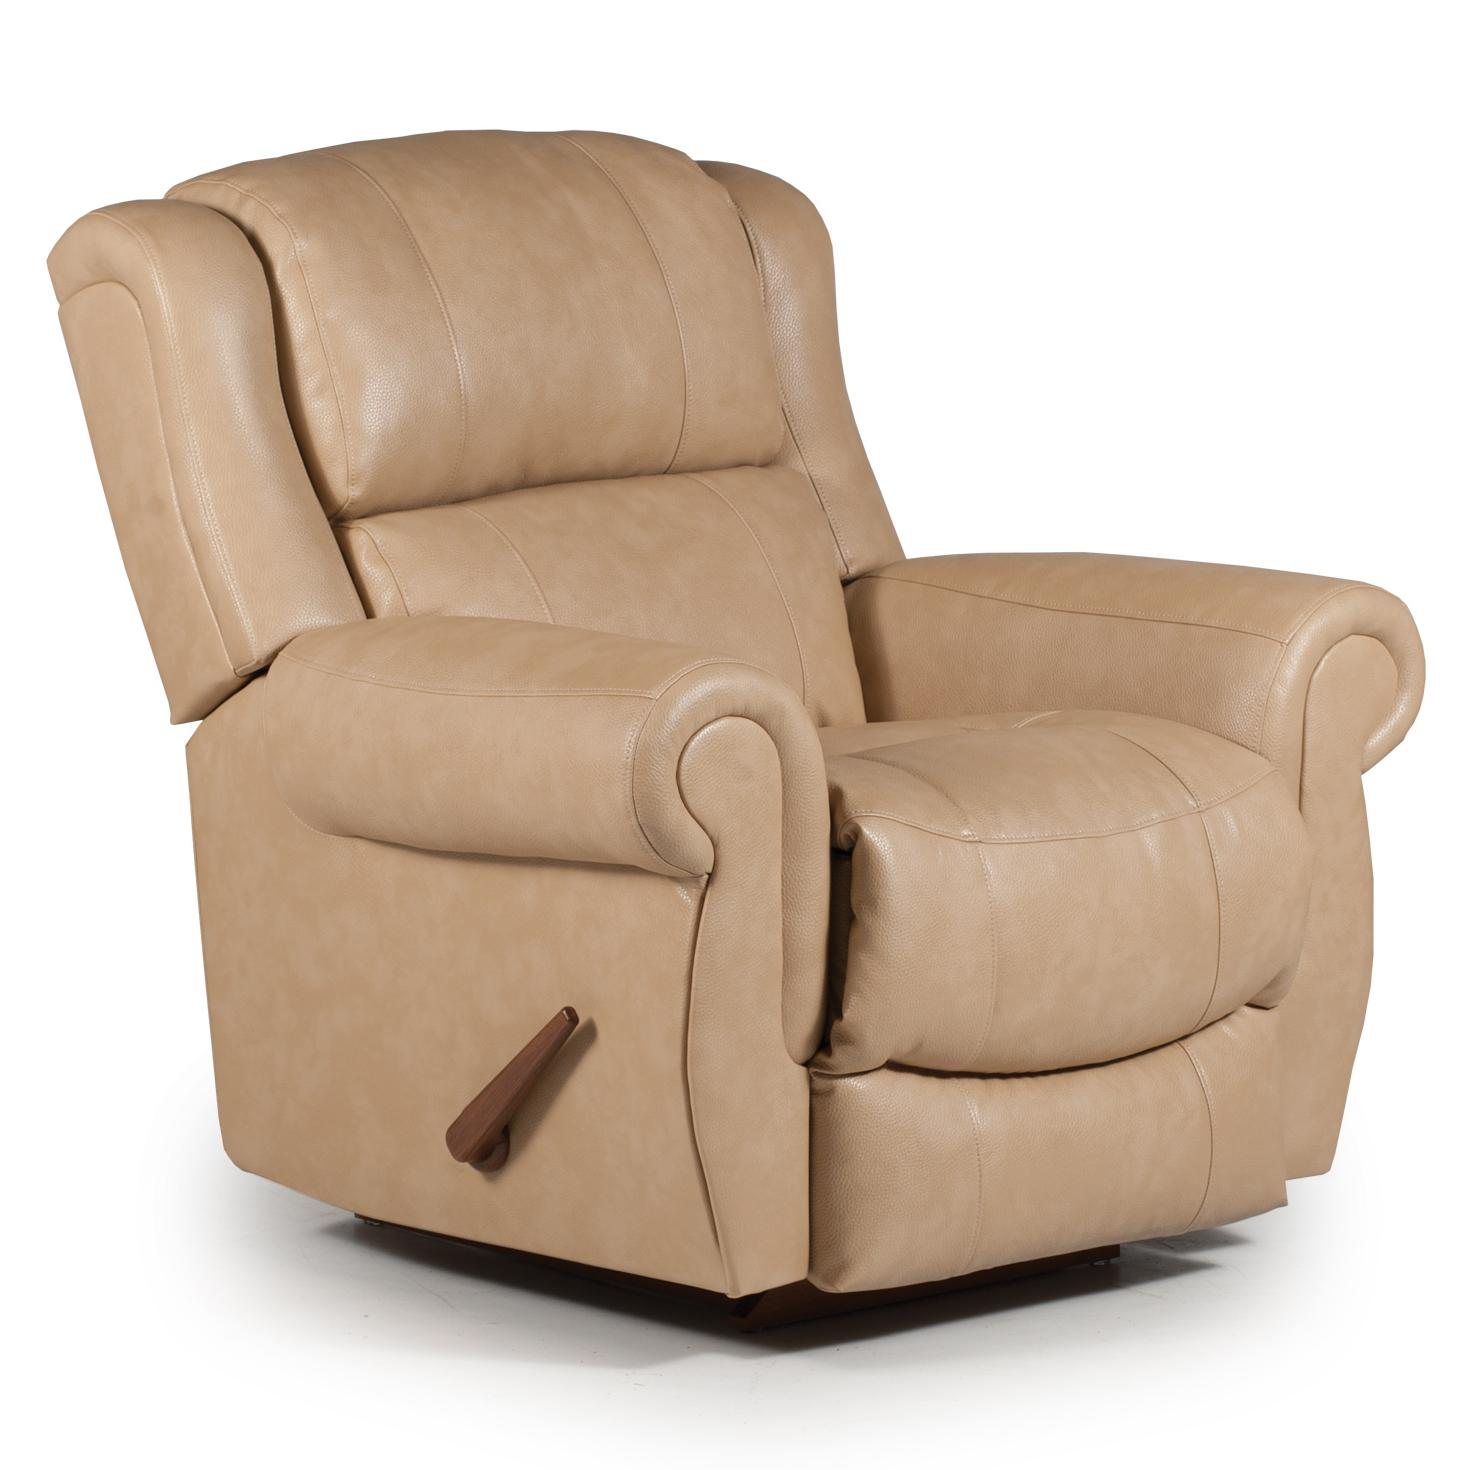 Best Home Furnishings Recliners - Medium Terrill Power Rocker Recliner - Item Number: 8NP77BL